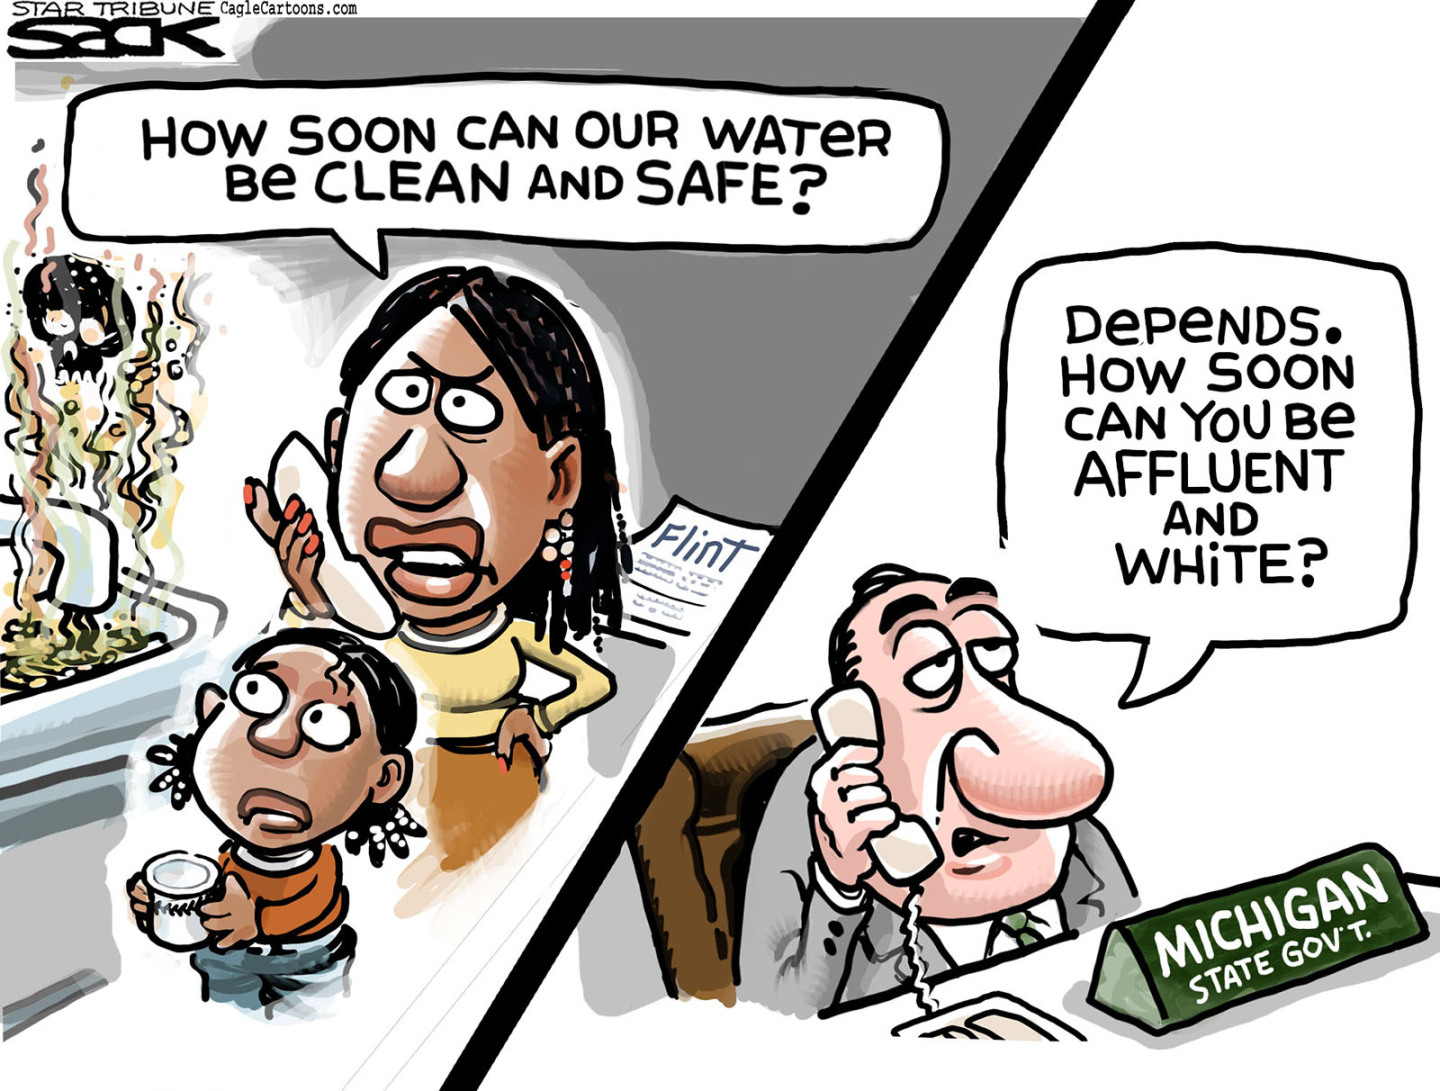 Republican mis management created lead contaminated water supplies.